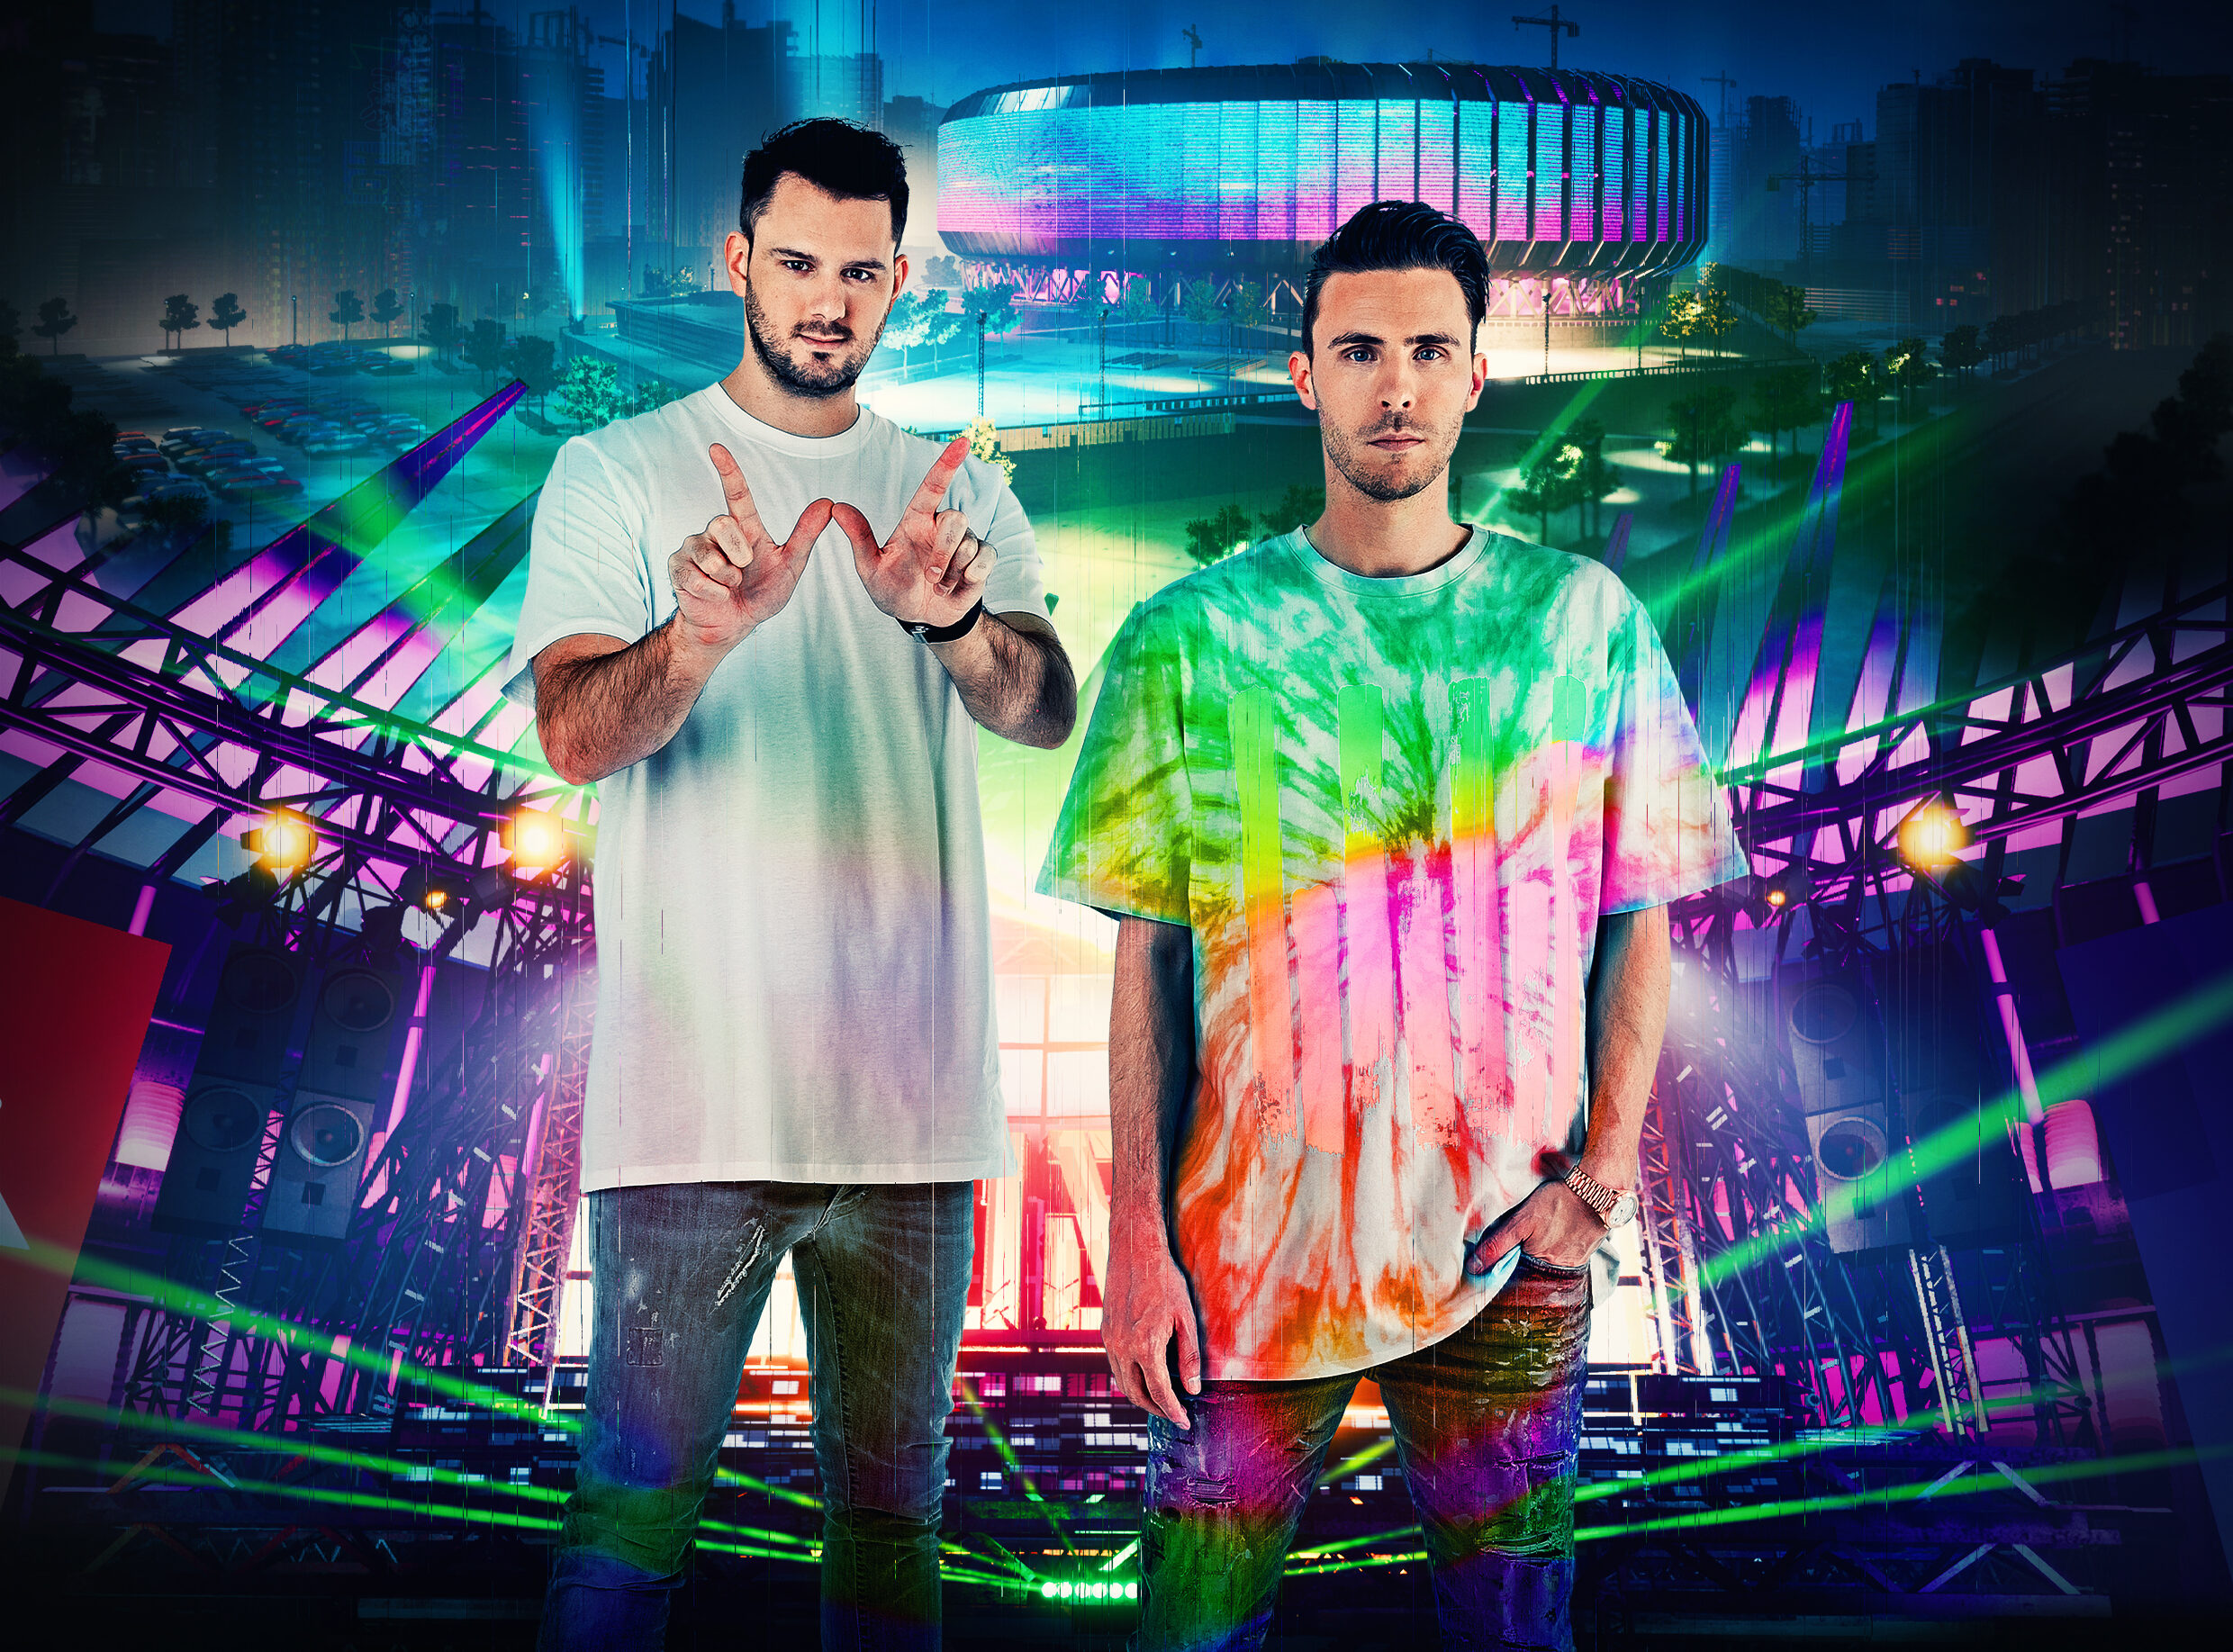 W&W Rave Culture Live